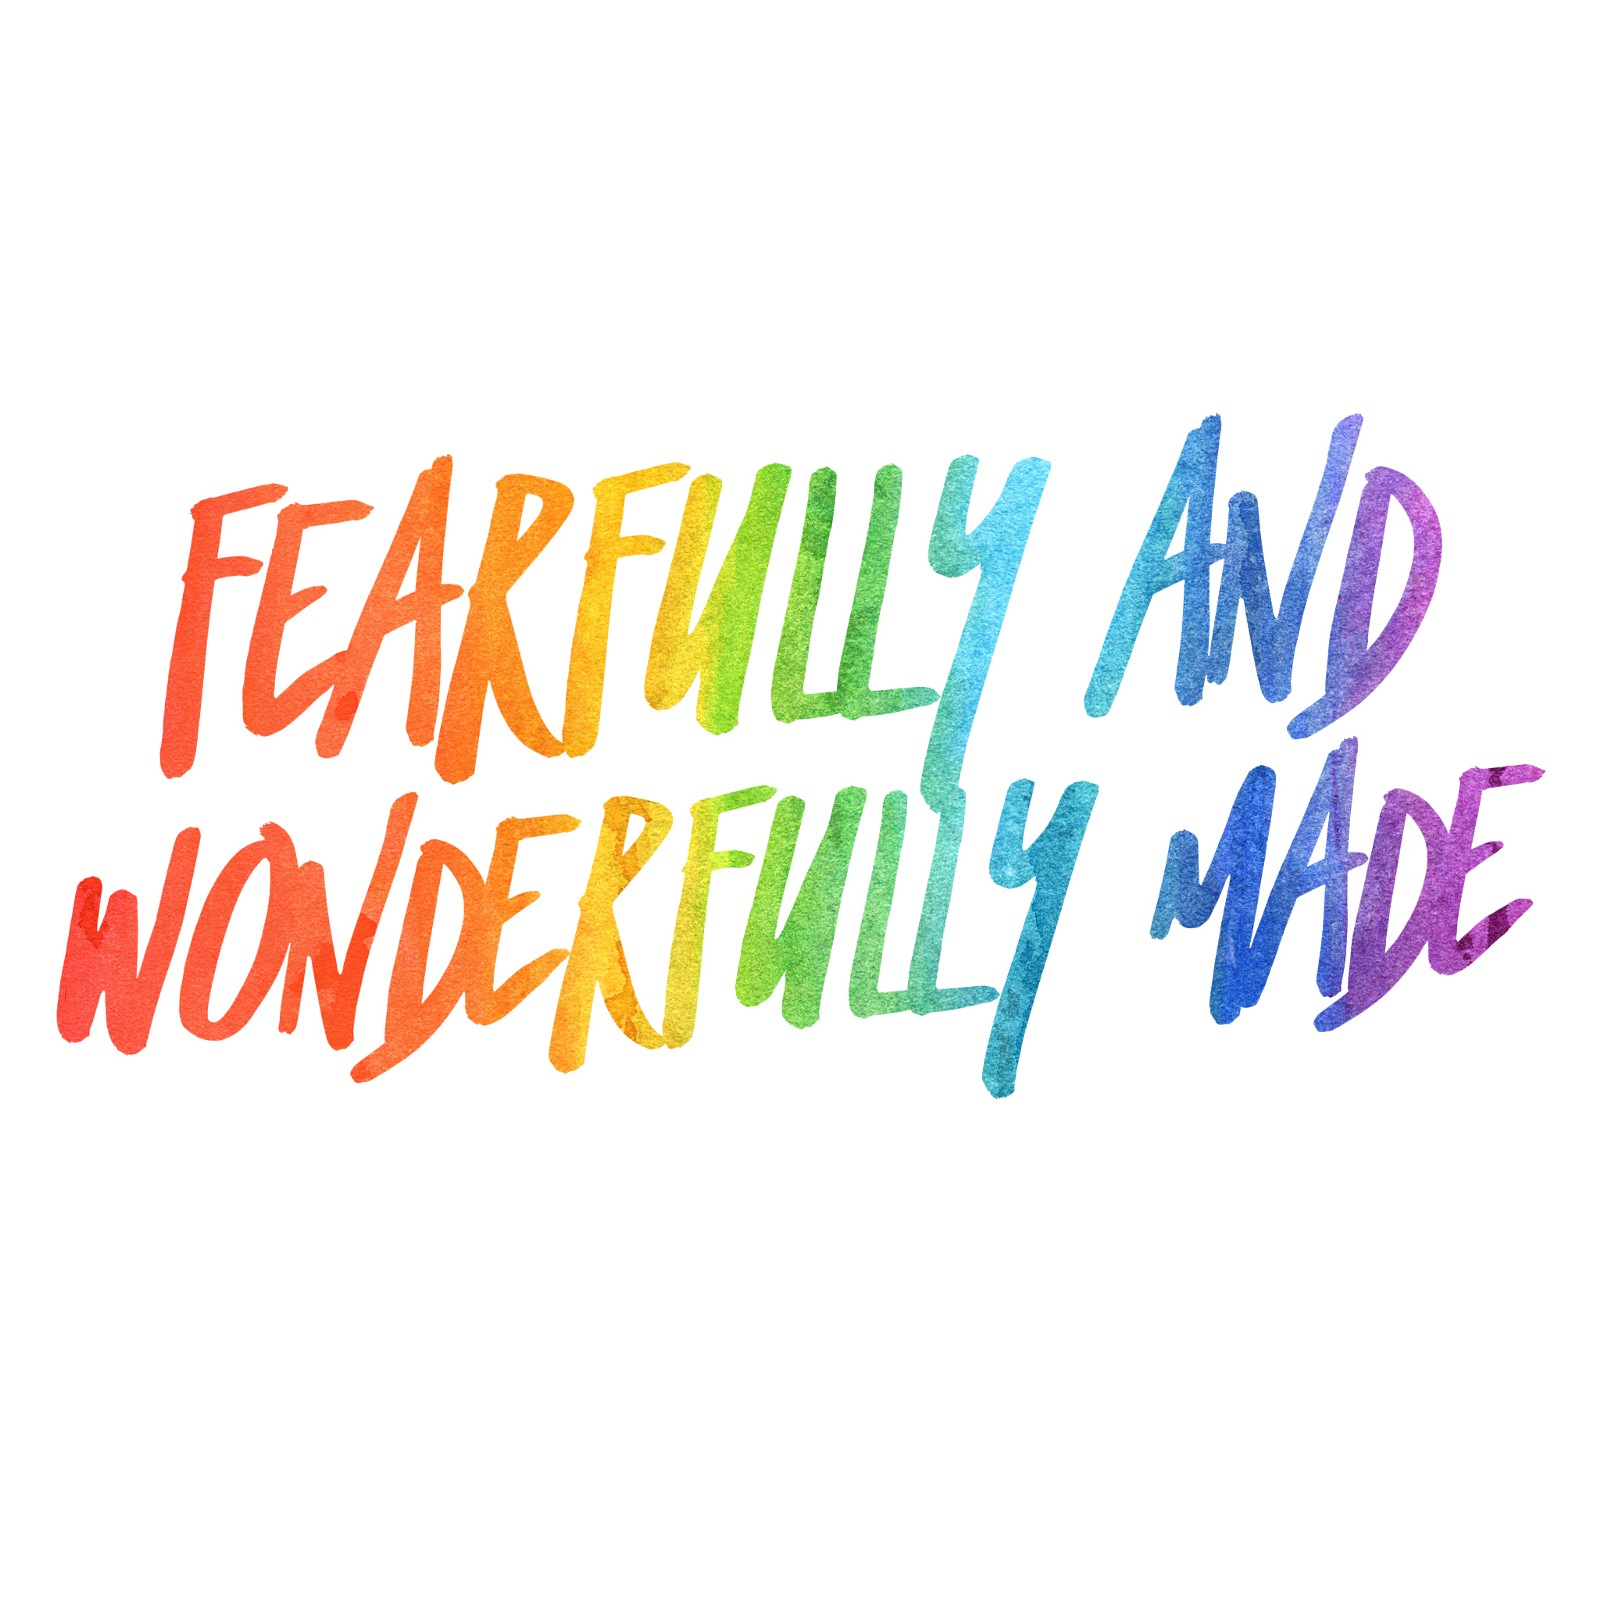 you are fearfully and wonderfully made sign